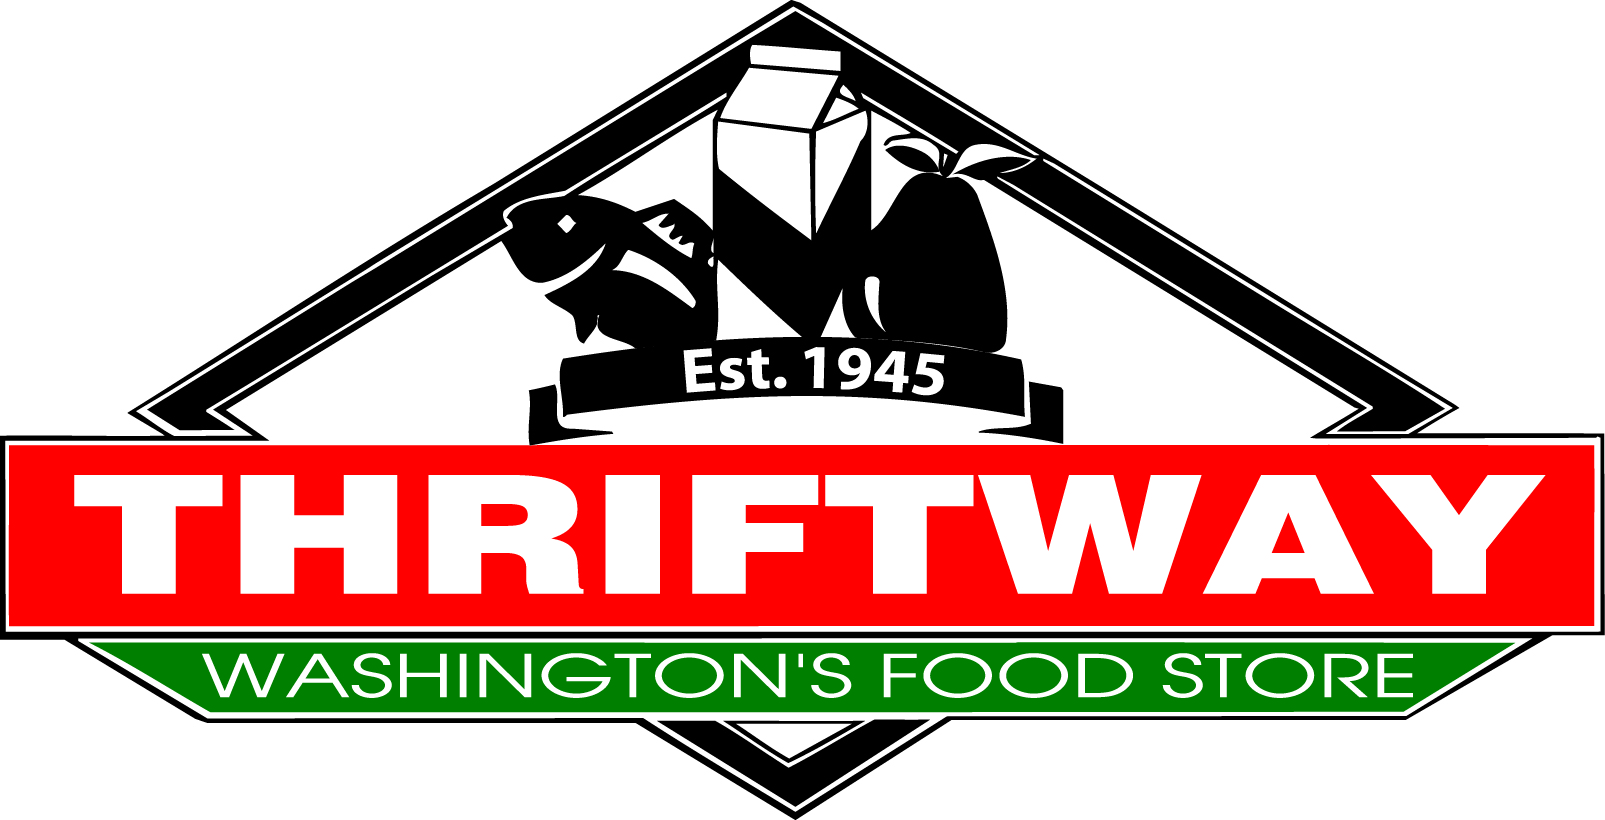 THRIFTWAY-LOGOcolor.jpg